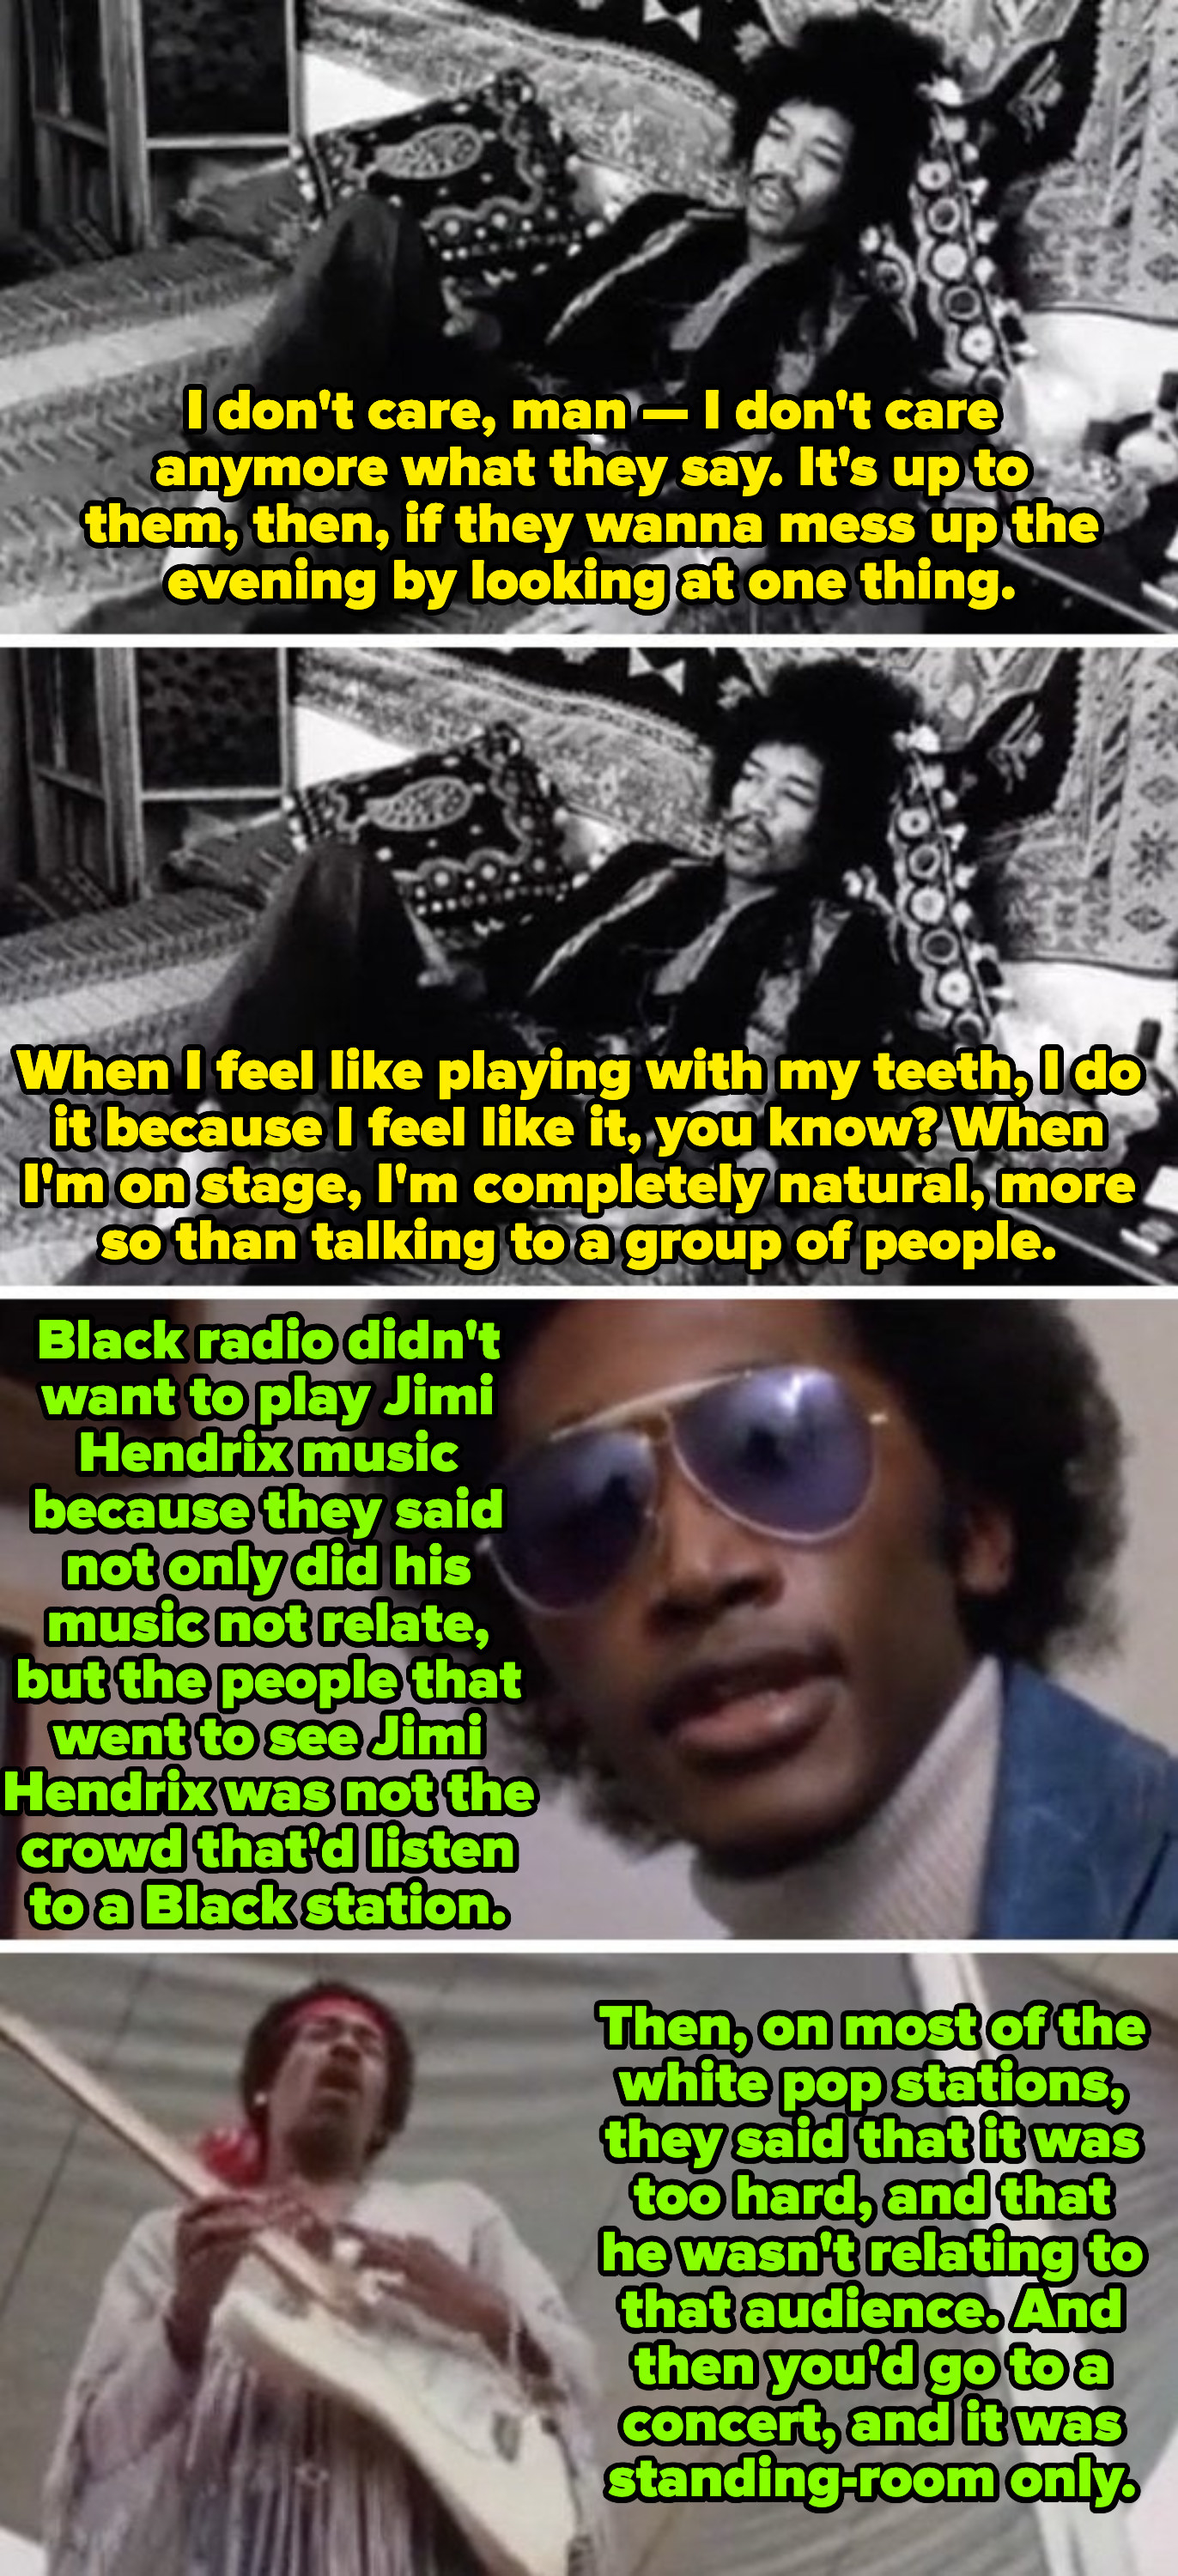 """Jimi Hendrix discussing his concert performances, saying: """"When I feel like playing with my teeth, I do it because I feel like it. When I'm on stage, I'm completely natural, more so than talking to a group of people"""""""